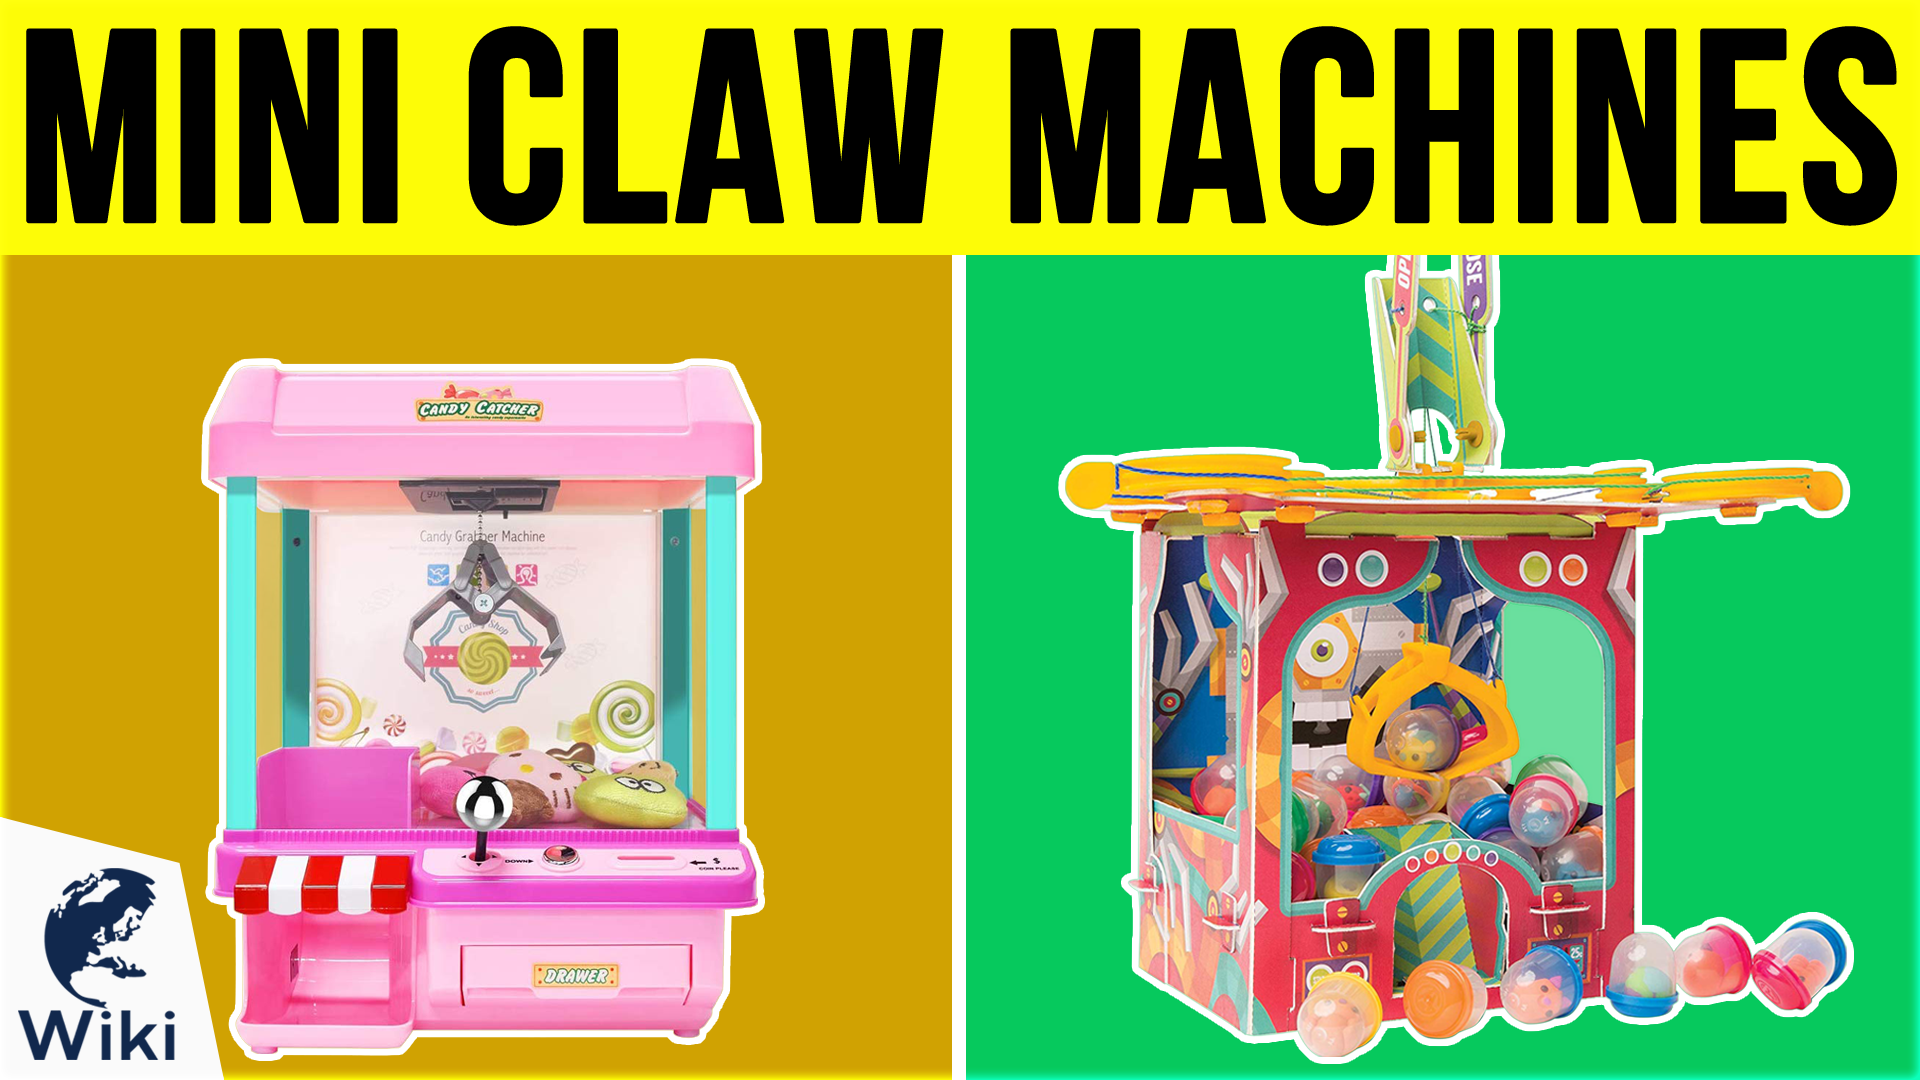 with Volume Control Switch SG/_B07GZT87K1/_US Animation Electronic Claw Toy Grabber Machine 6 Animal Plush /& Authentic Arcade Sounds for Exciting Play Etna The Claw Toy Grabber Machine with Lights /& Sounds